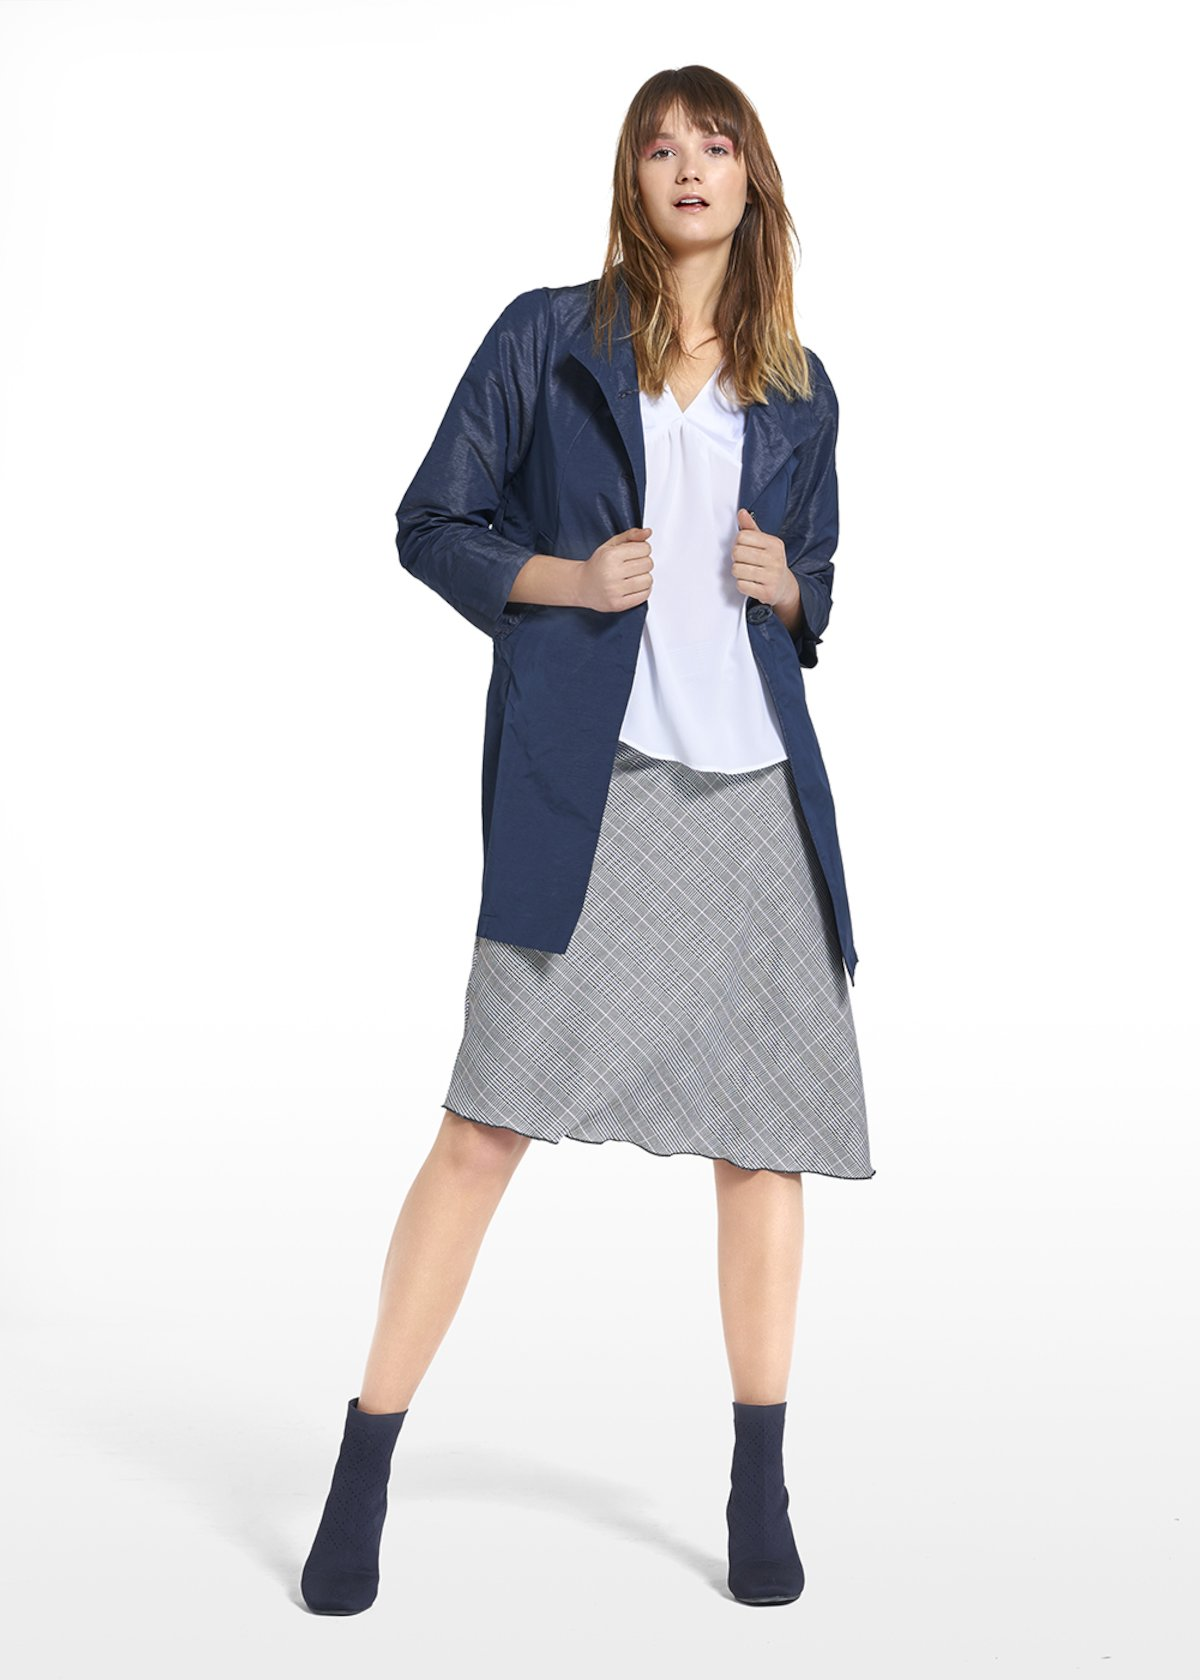 Cappotto Trendy in tessuto shantung con collo alto - Medium Blue - Donna - Immagine categoria